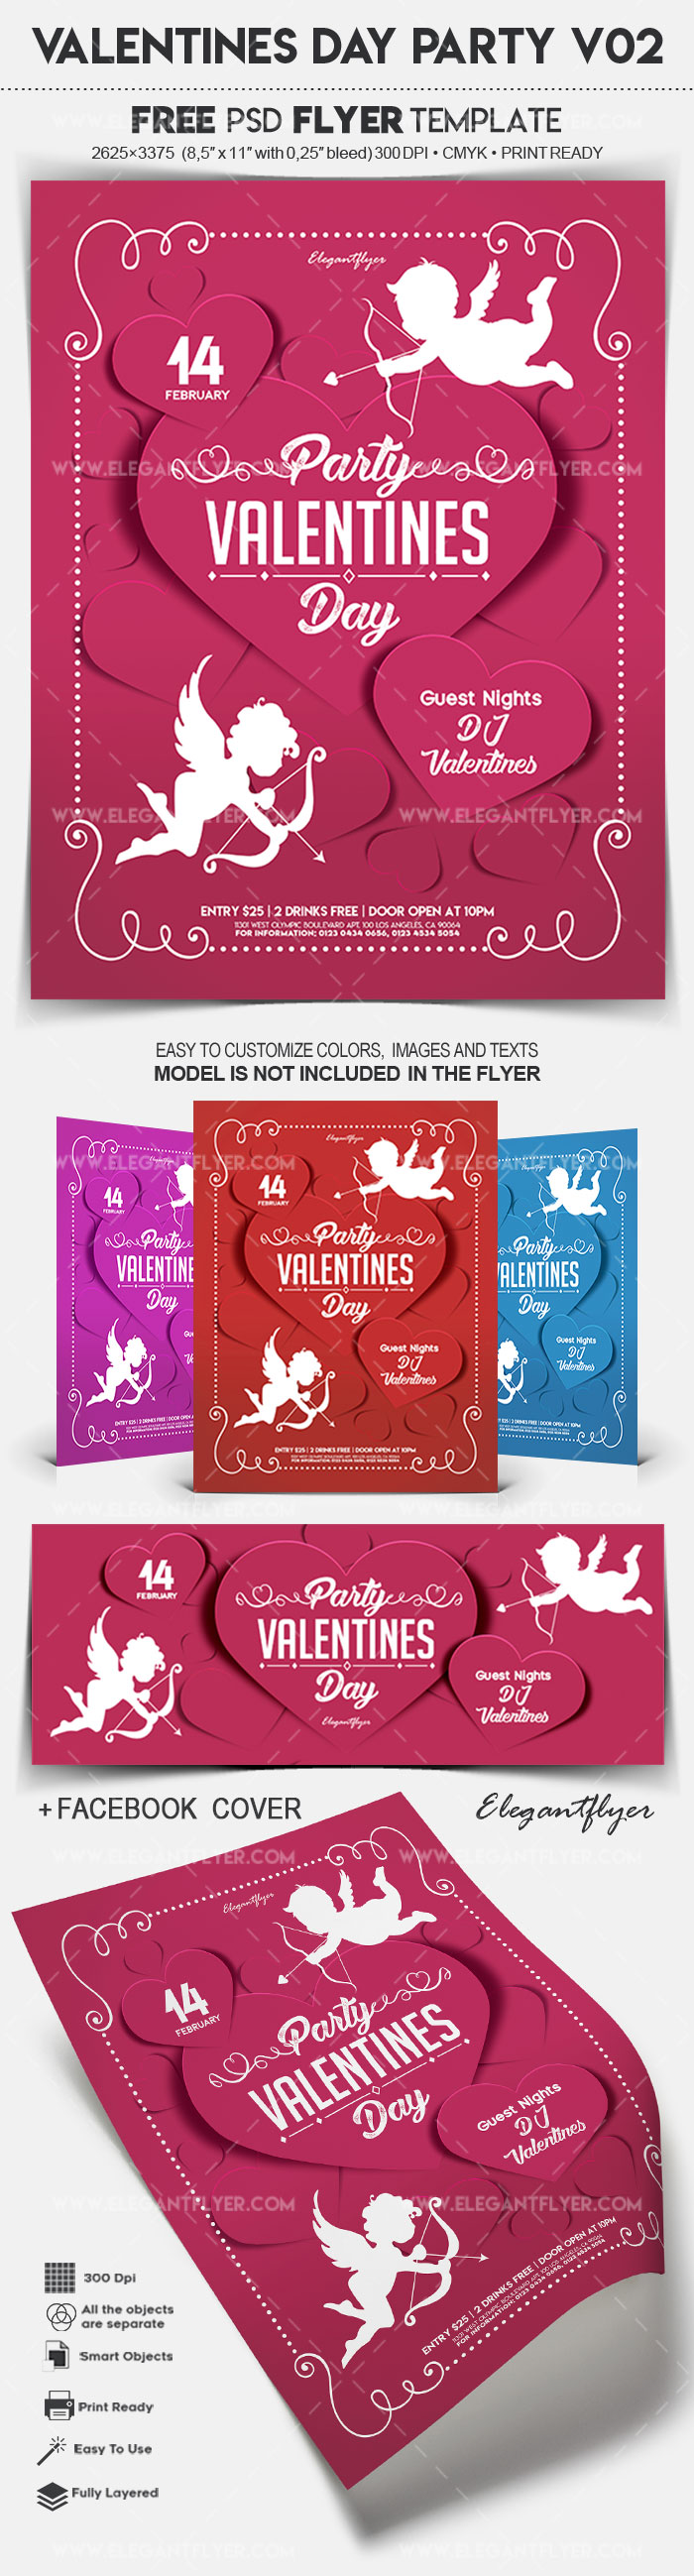 Valentines Day Party V02 – Free Flyer PSD Template